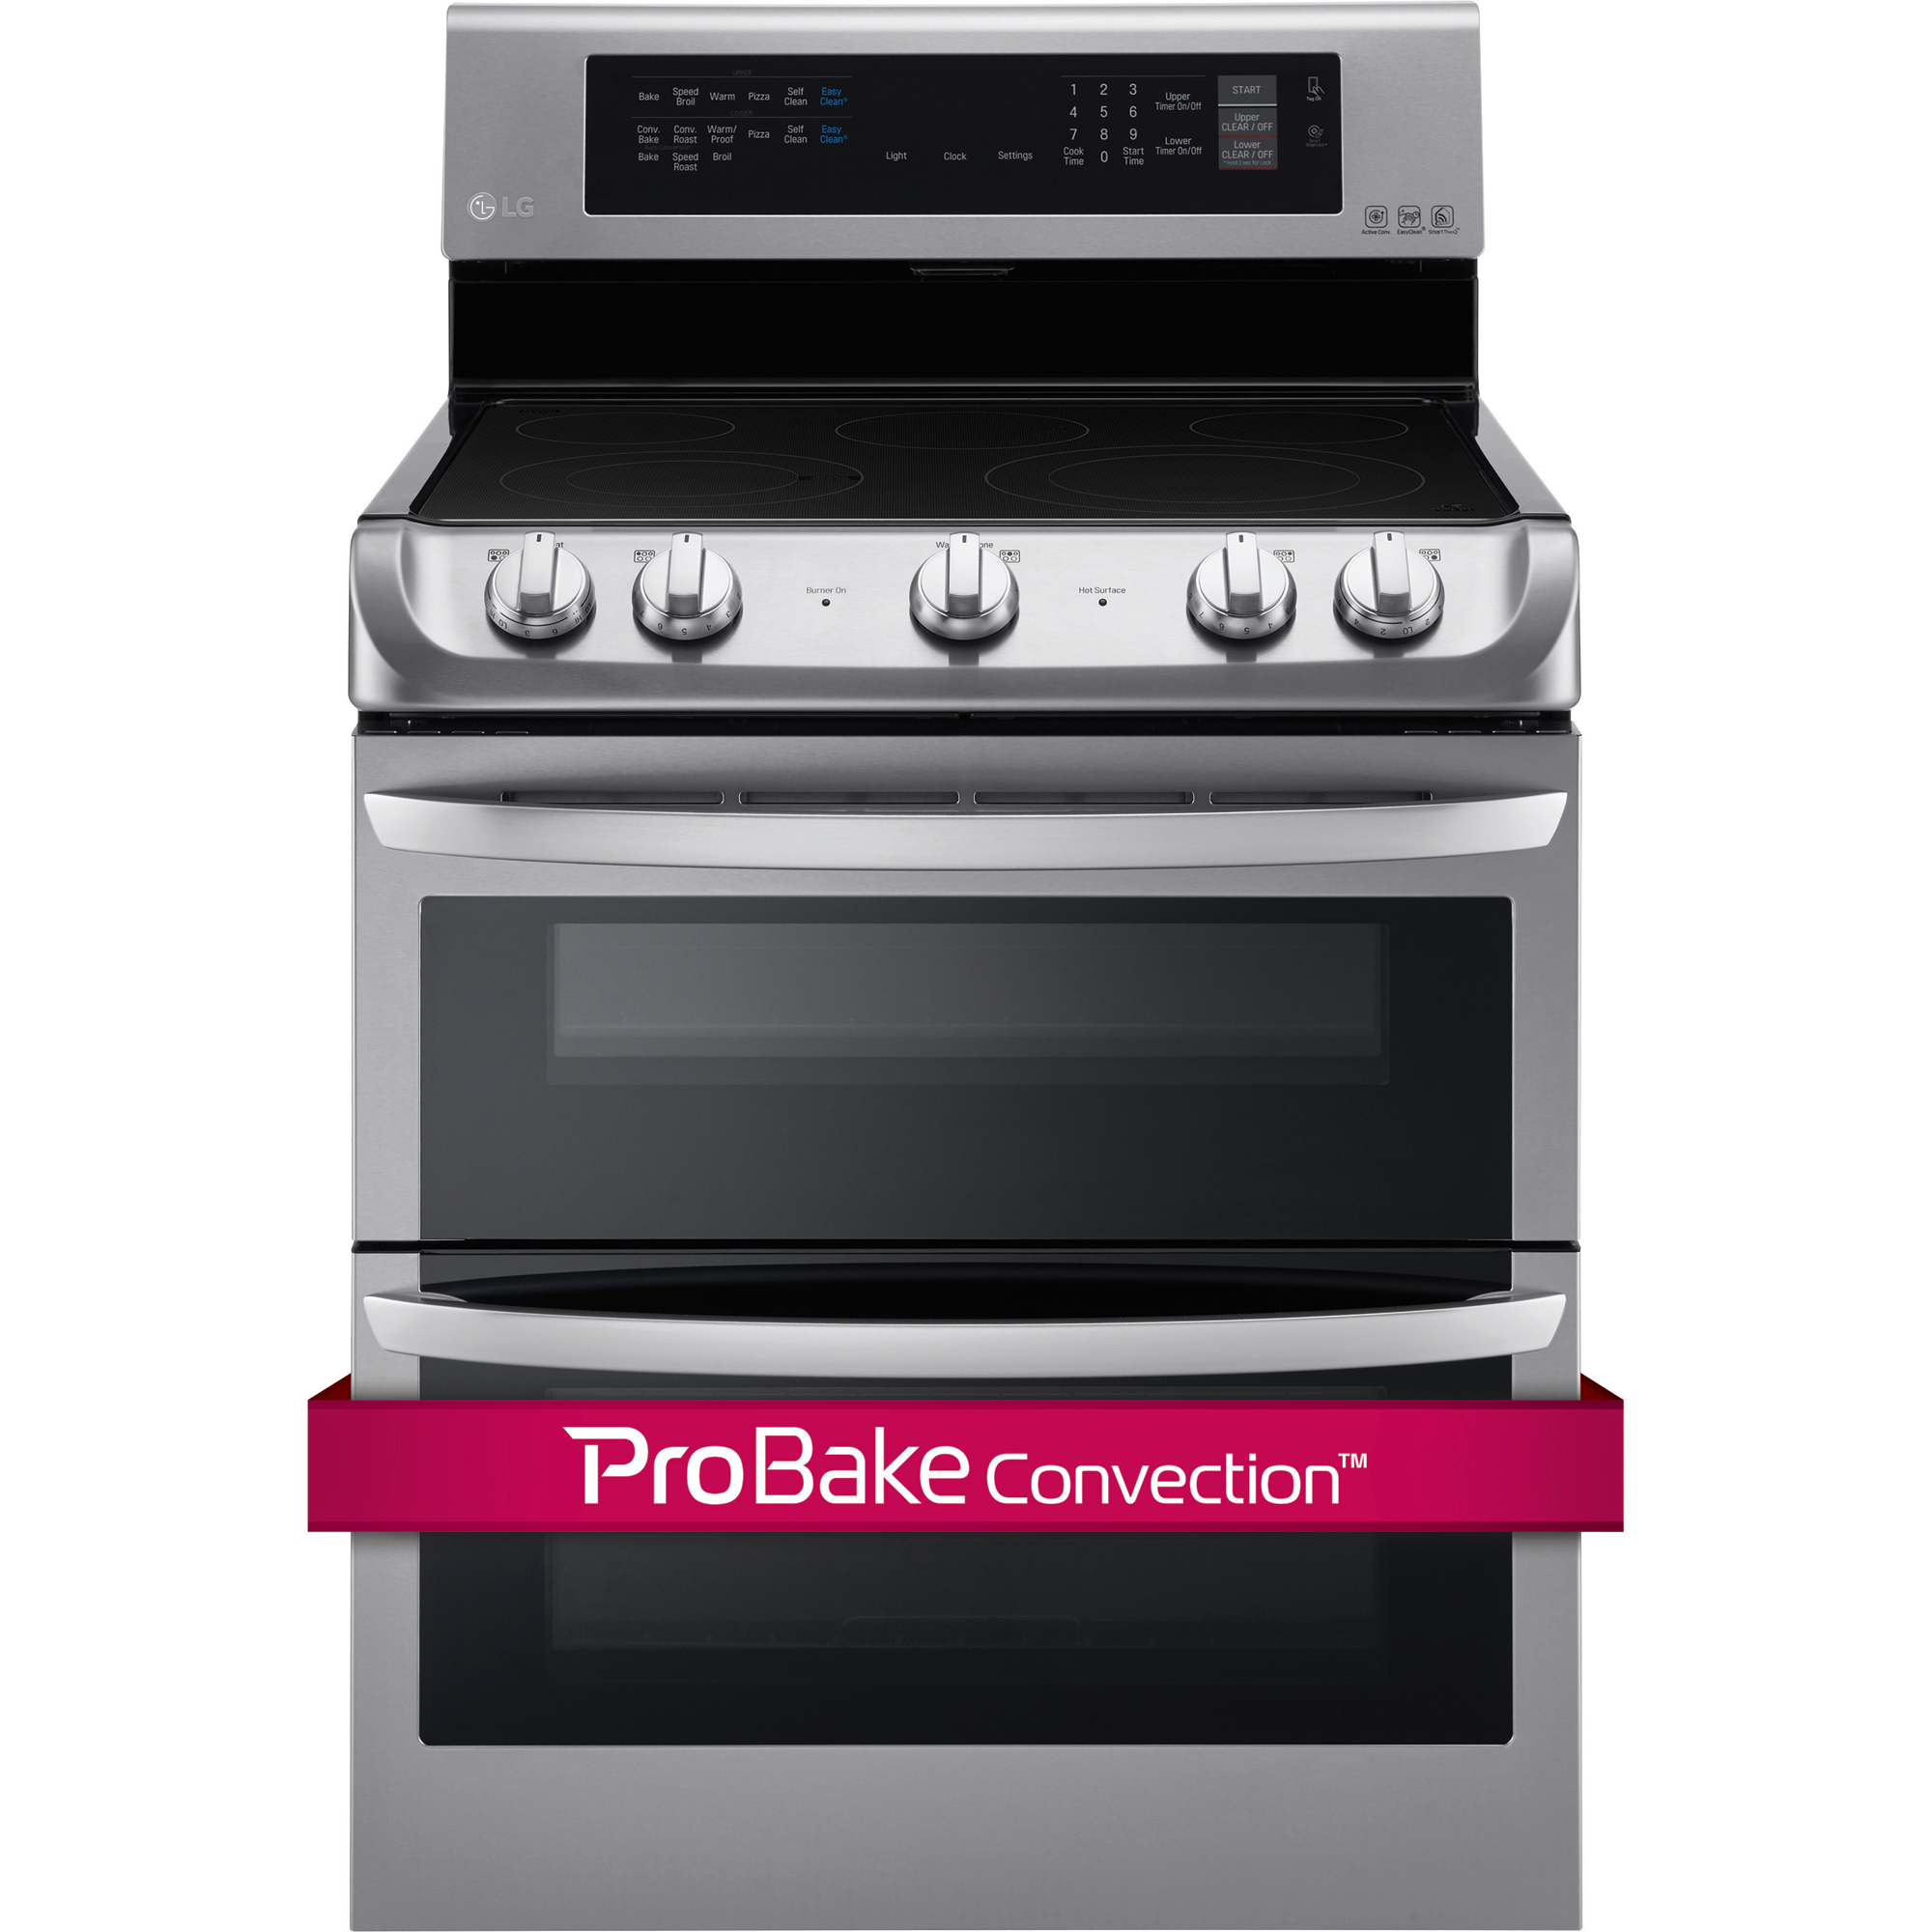 LG LDE4413ST 7.3 cu. ft. Double-Oven Electric Range w/ProBake Convection™ & EasyClean® – Stainless Steel